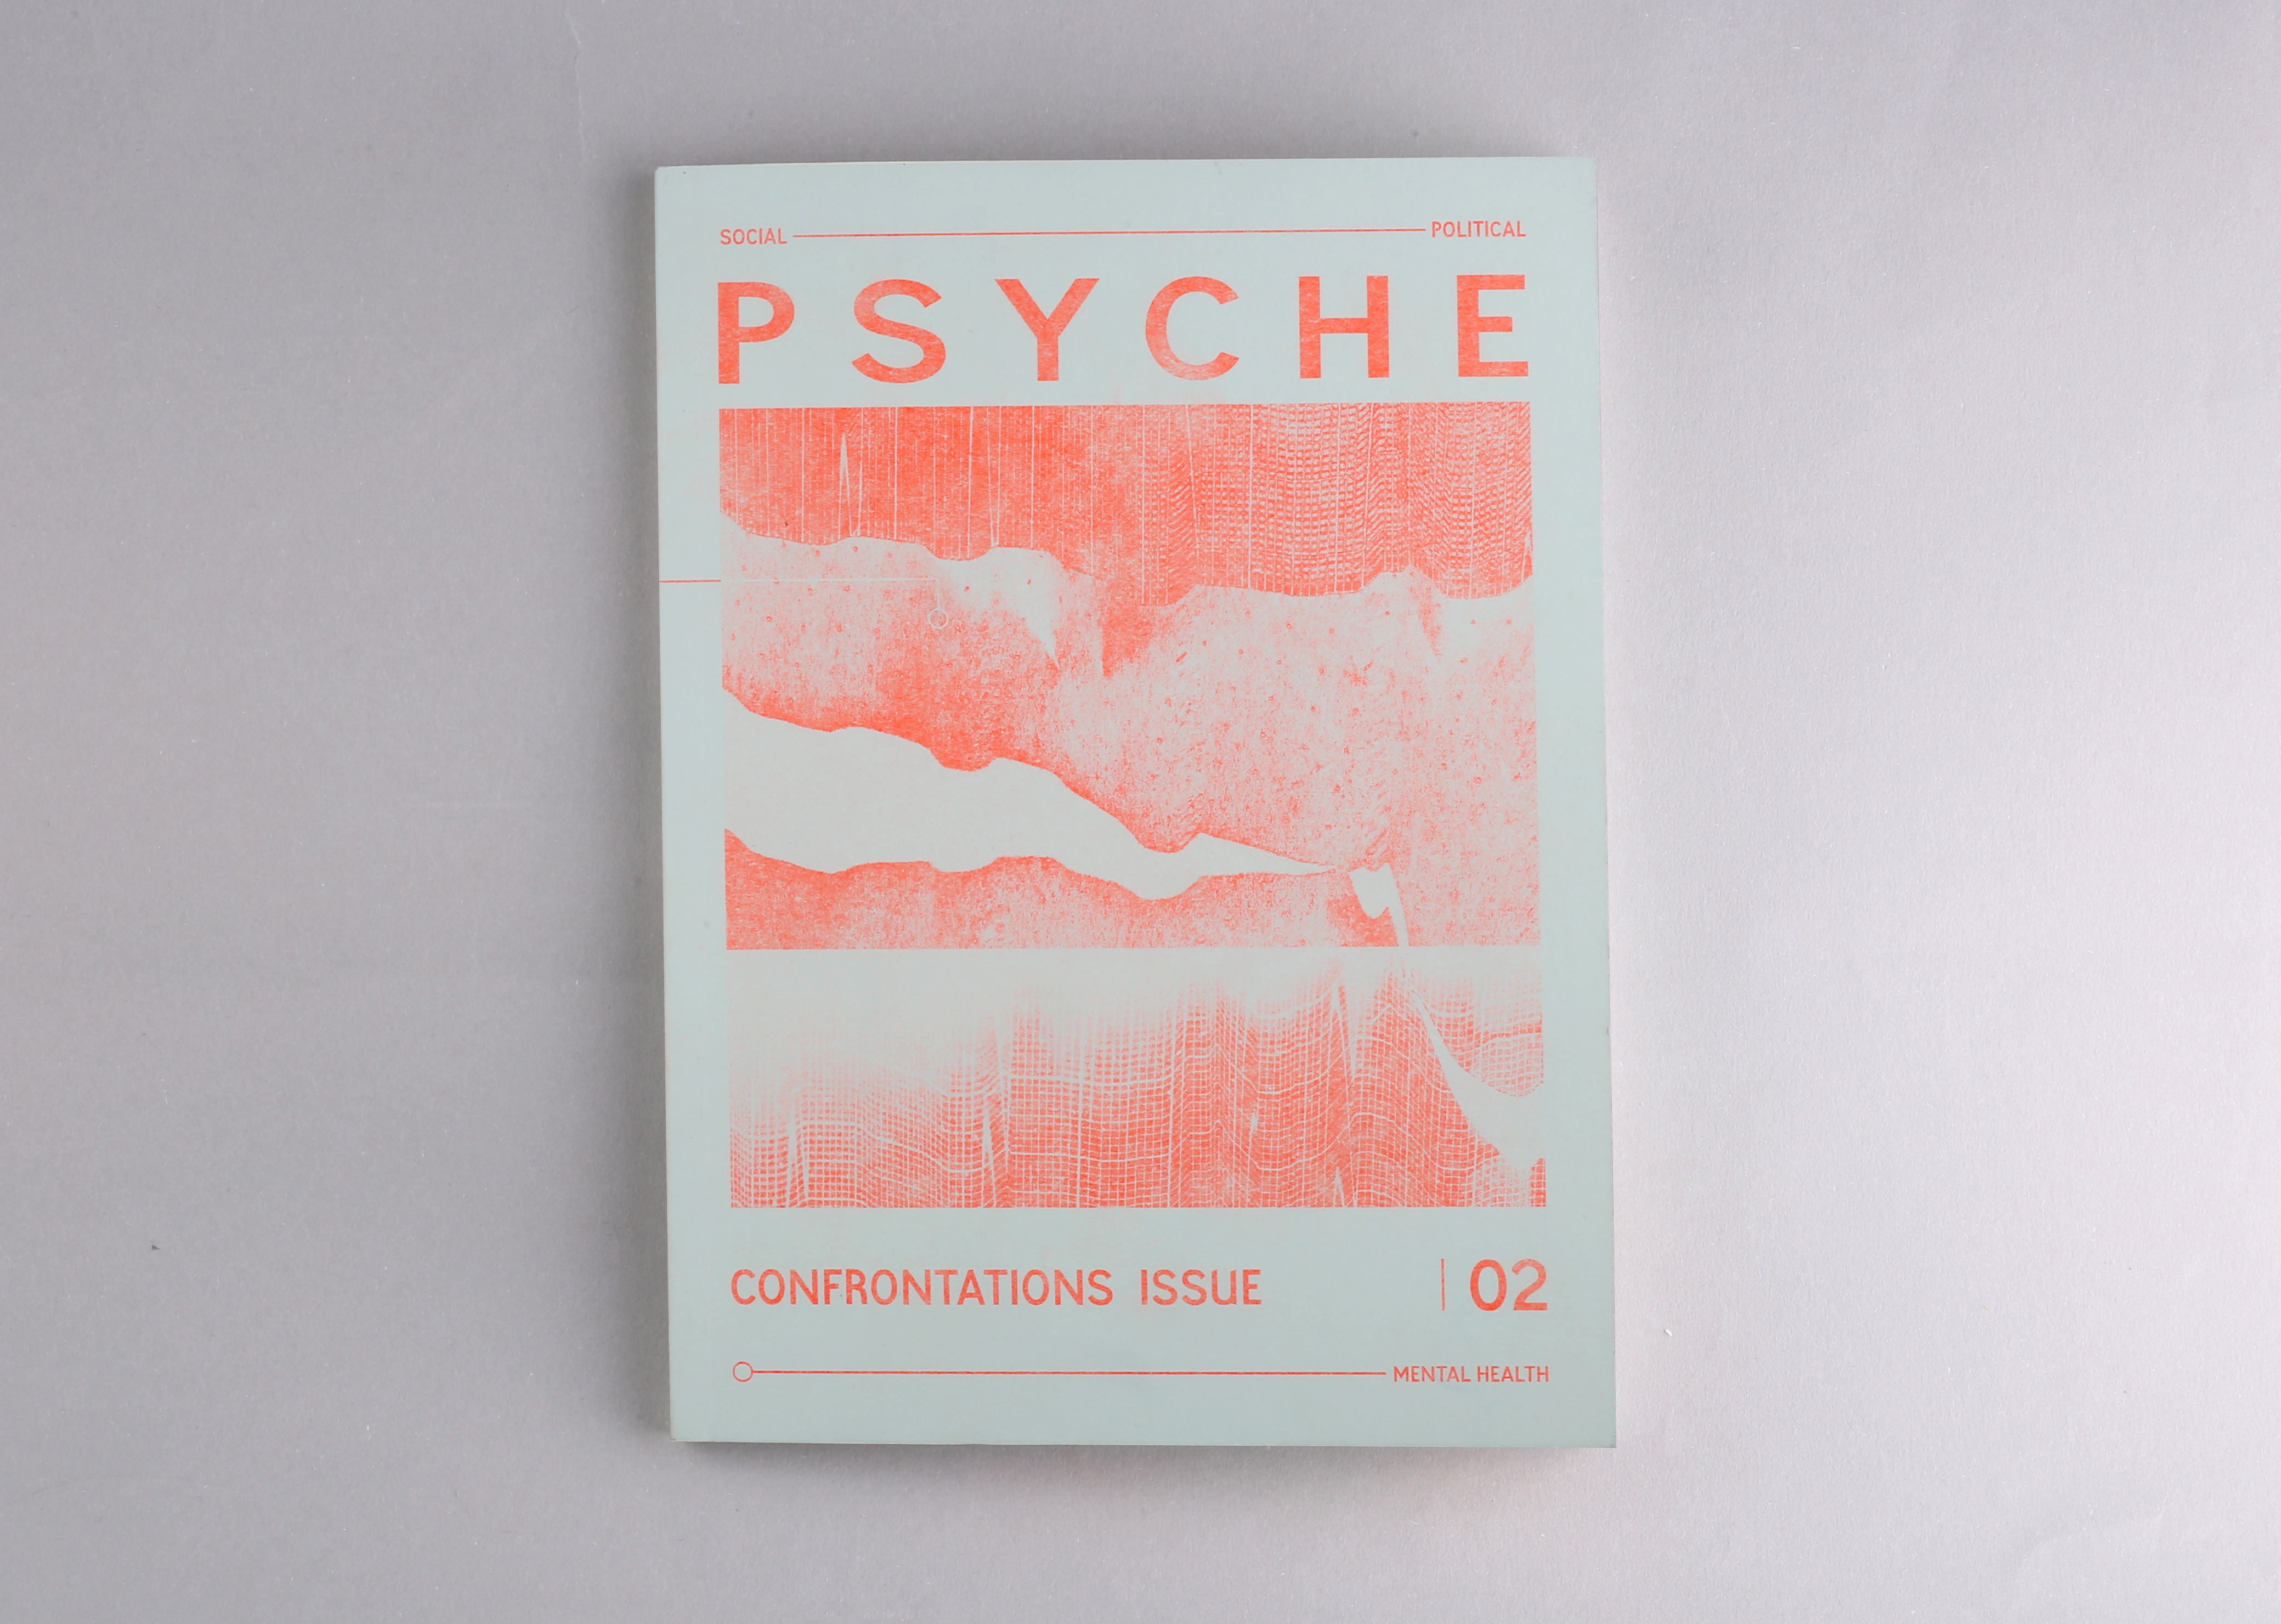 Interview: Psyche Publication